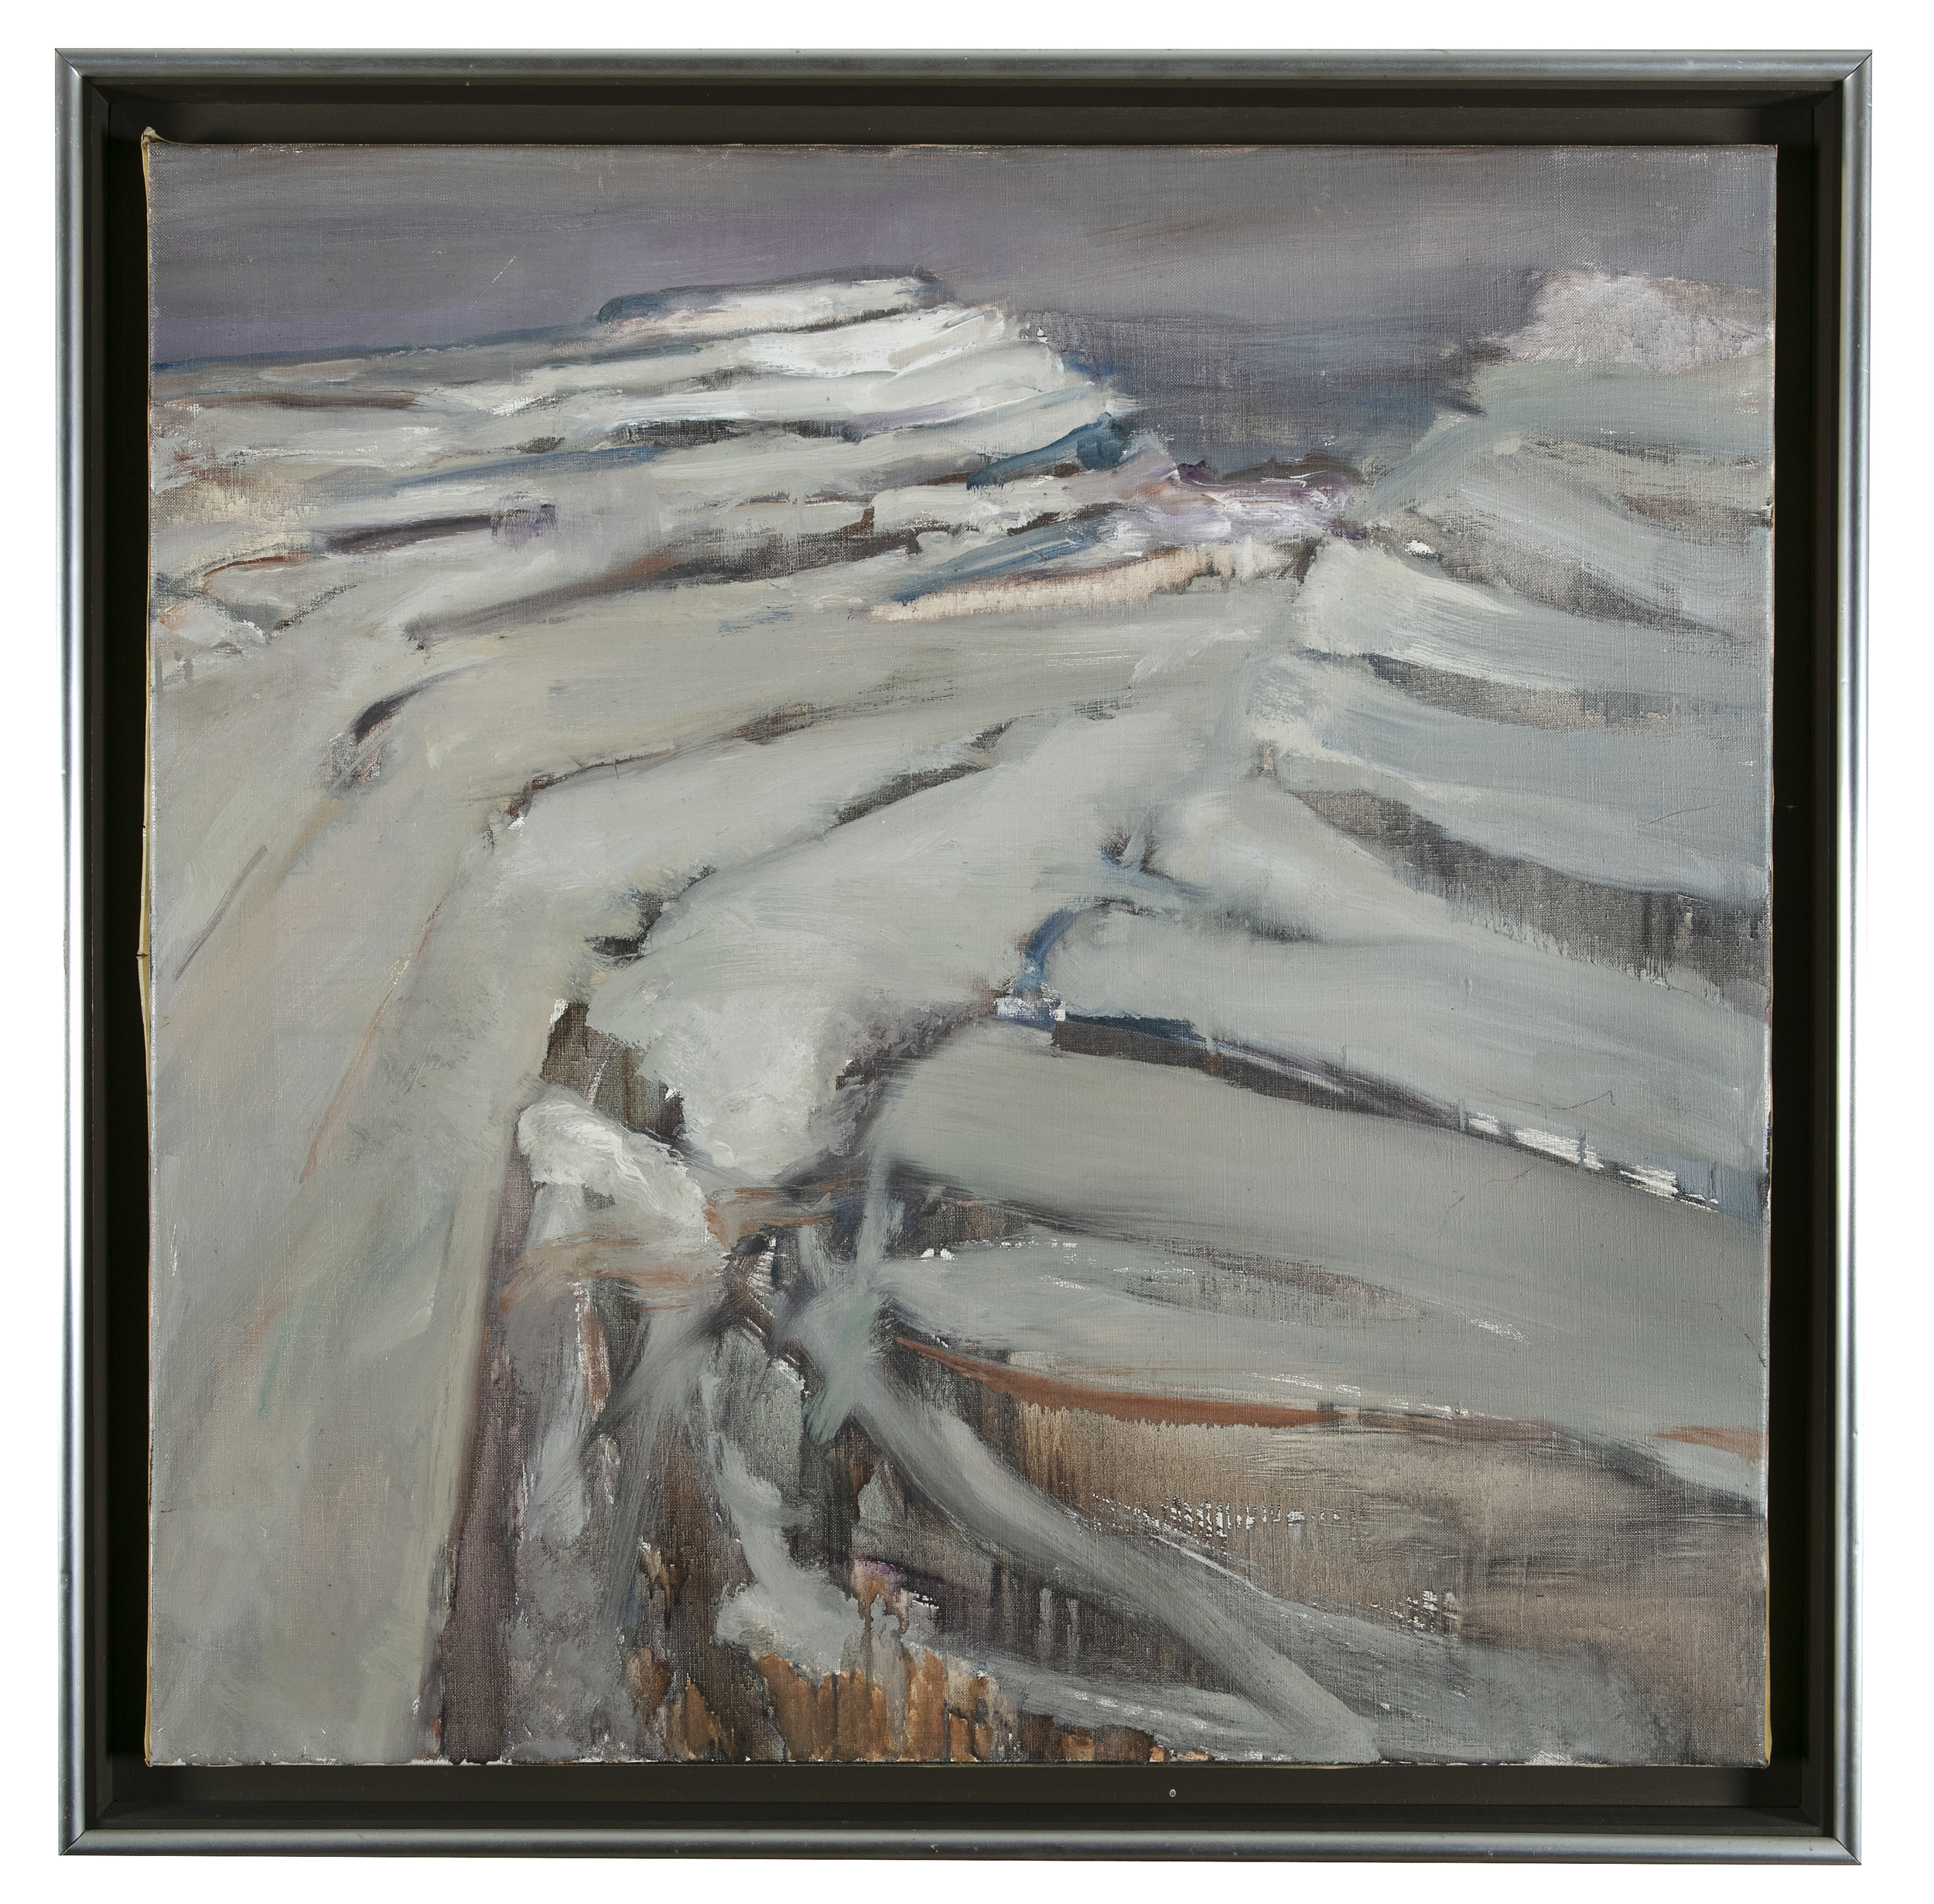 Lot 18 - Barrie Cooke HRHA (1931-2014)Mullough Mor (1979)Oil on canvas, 75 x 75cm (29½ x 29½)Signed and dated